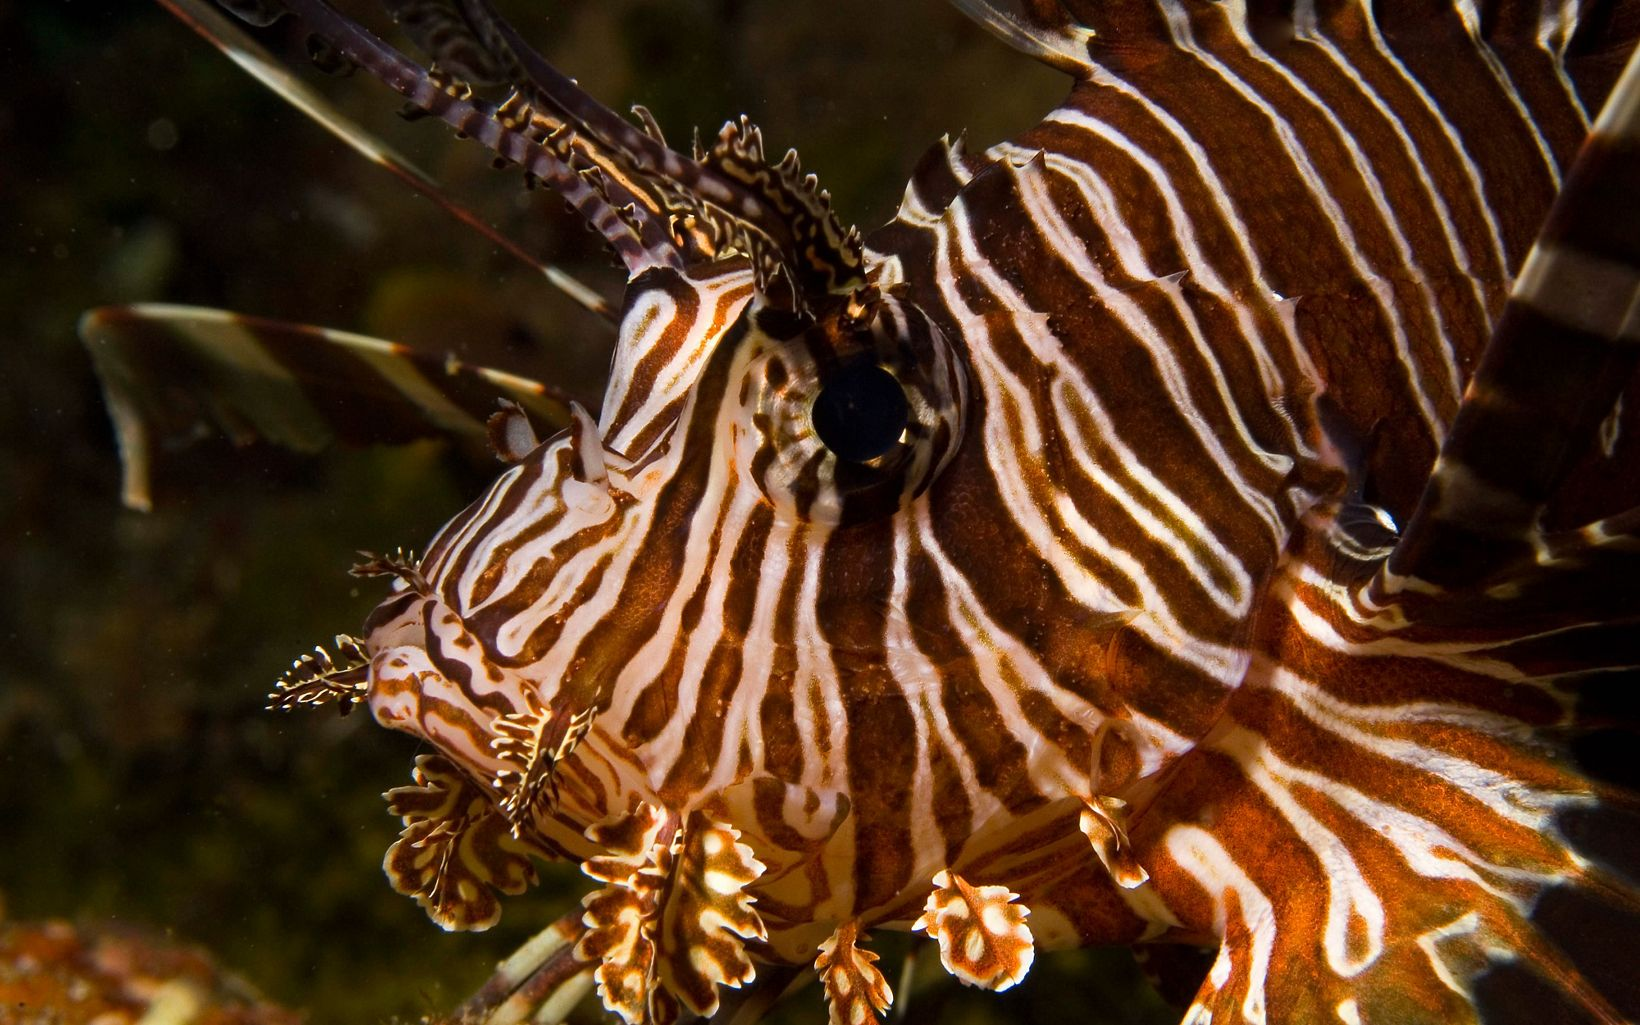 Close up of a brown and white striped lionfish.